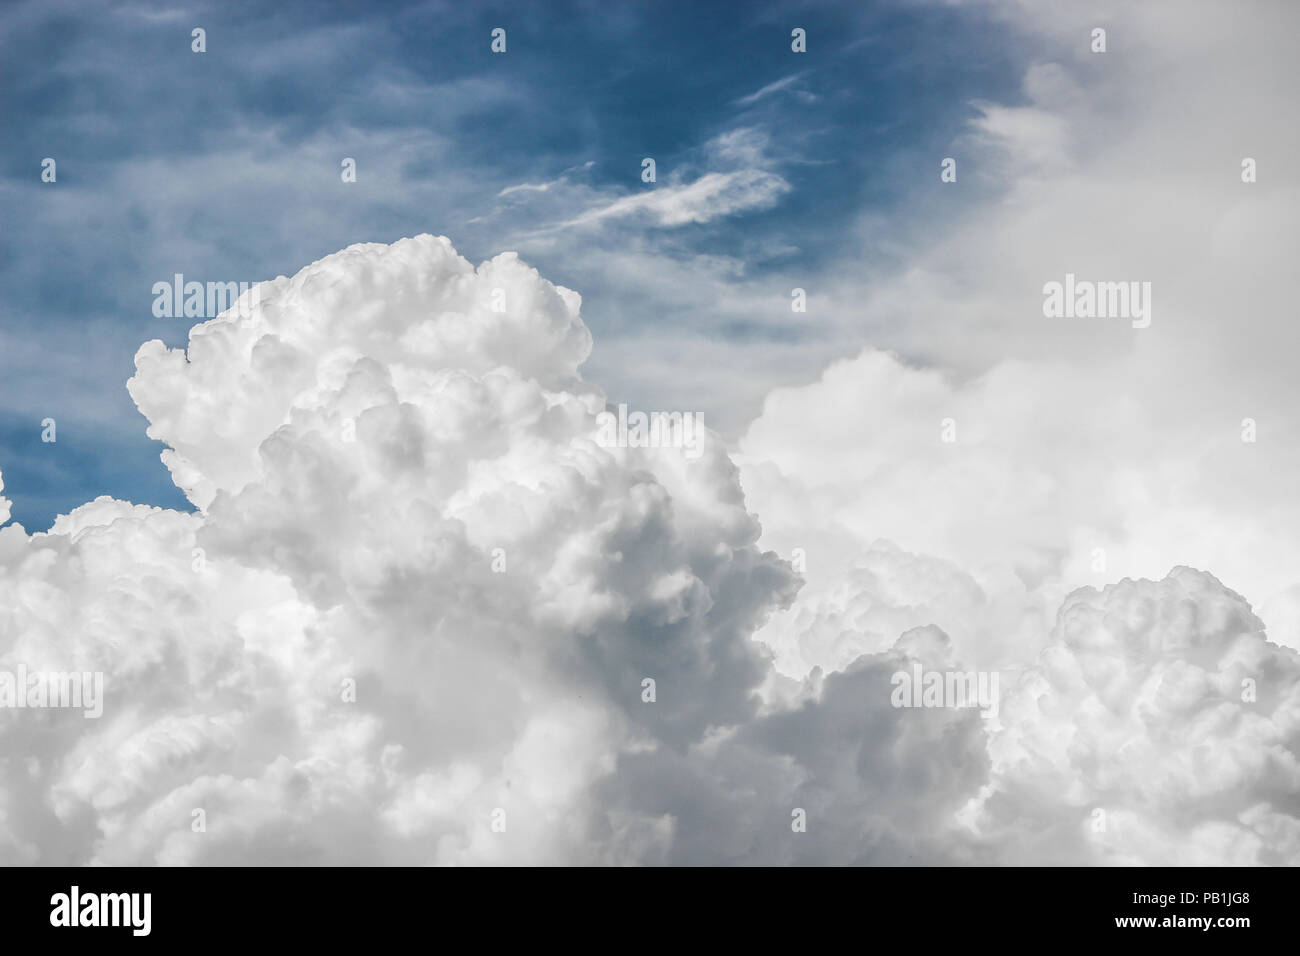 Big puffy clouds - Stock Image